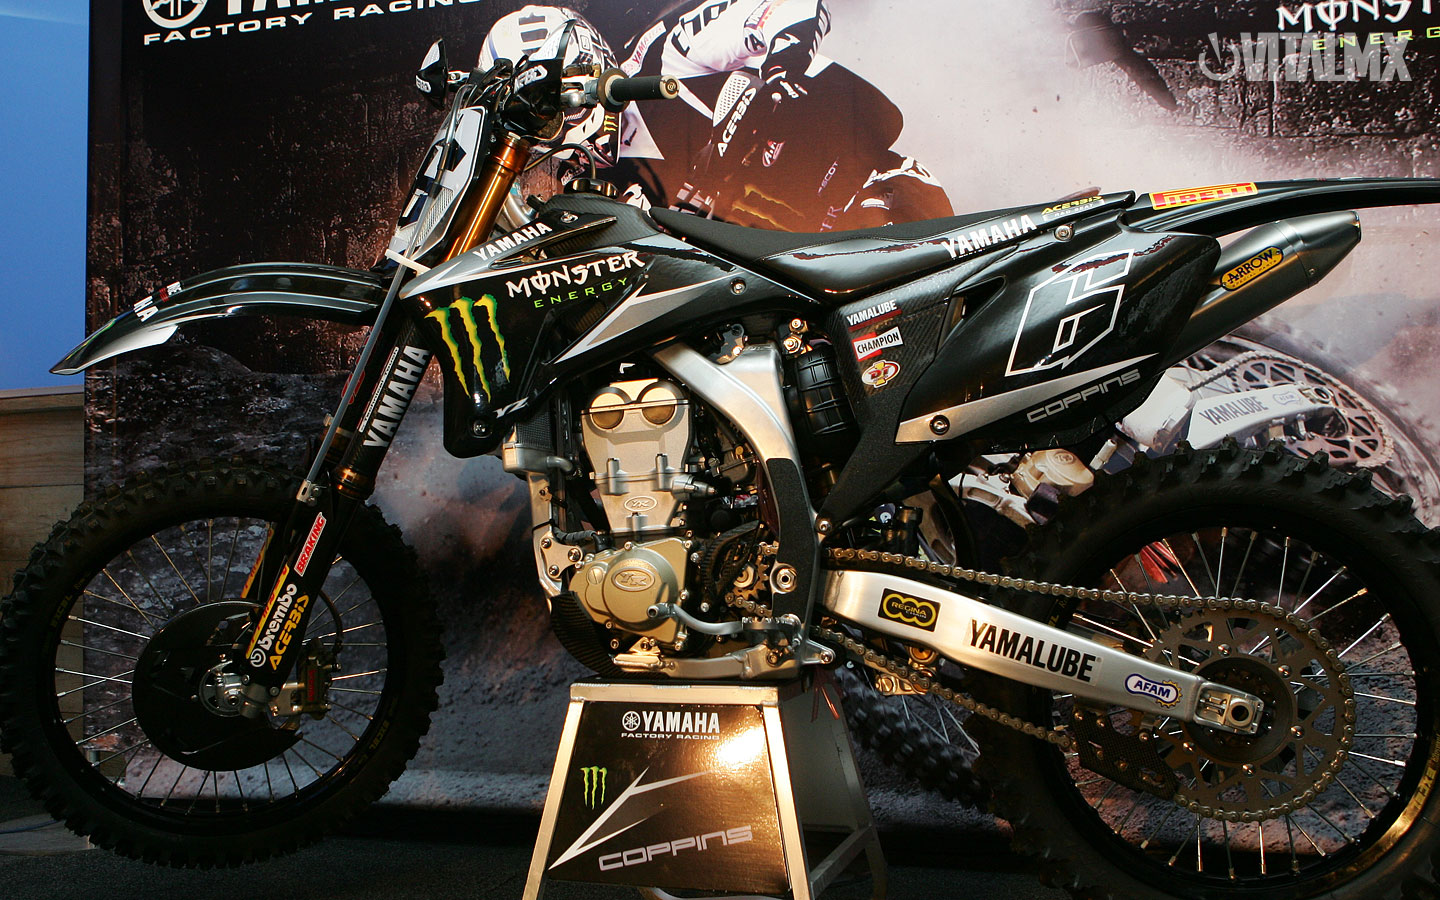 Yamaha Wallpaper Mx submited images.